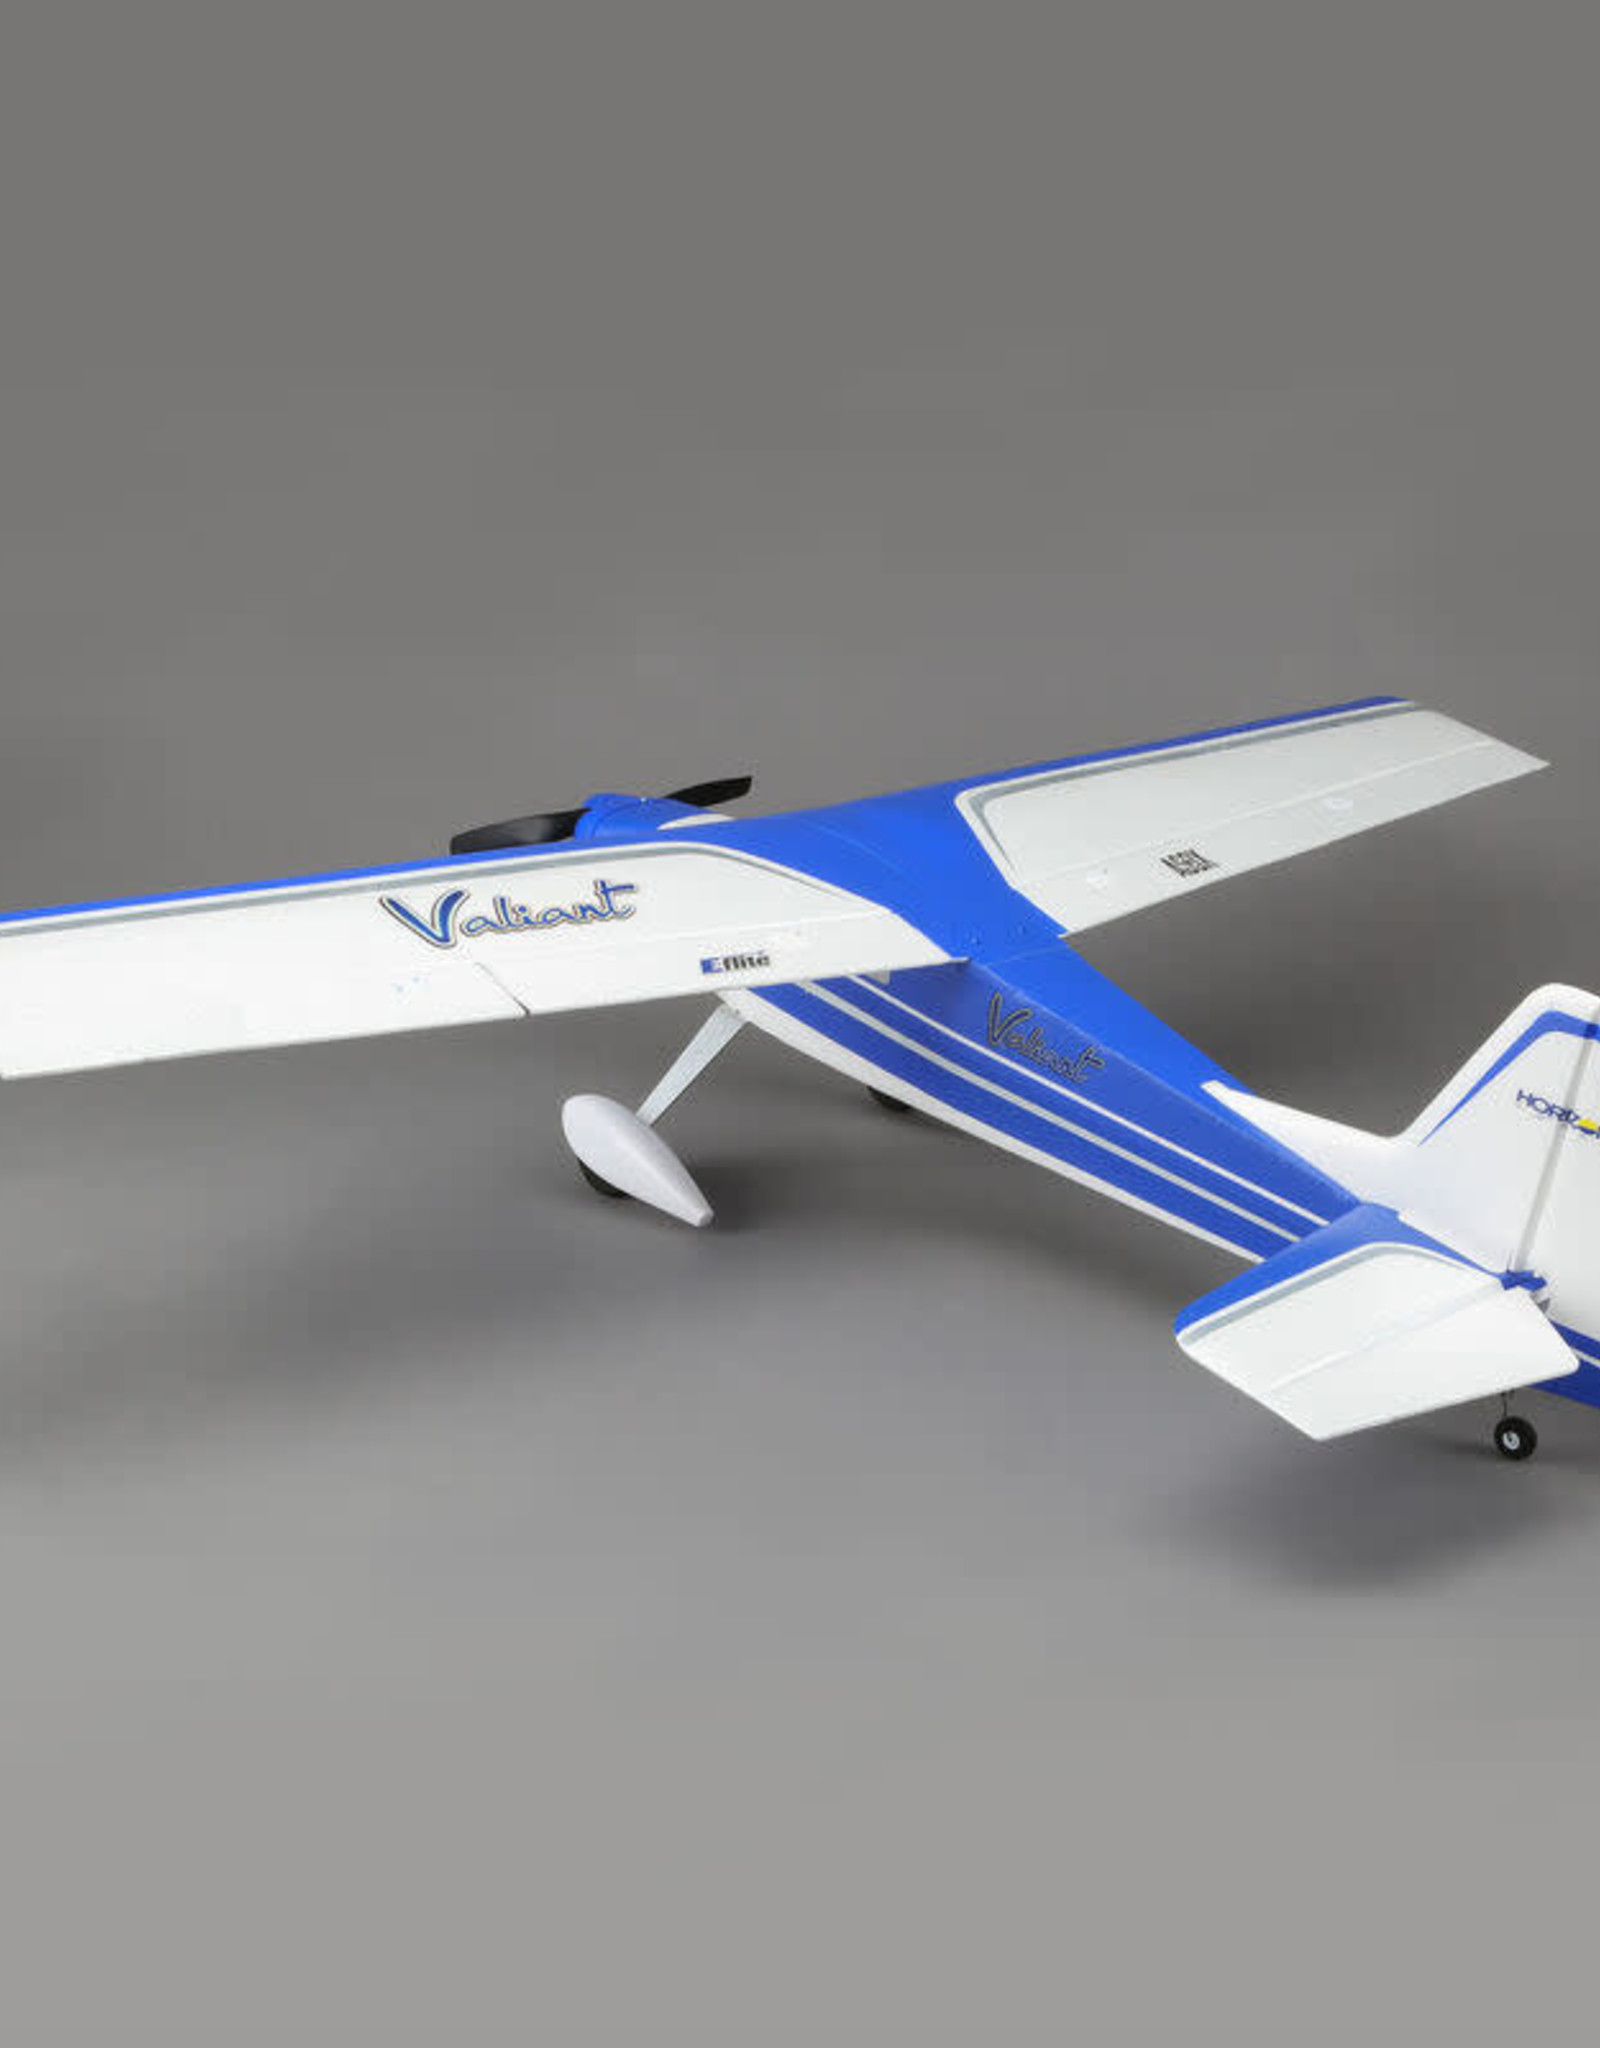 E-flite EFL4950 Valiant 1.3m BNF Basic with AS3X and SAFE Select